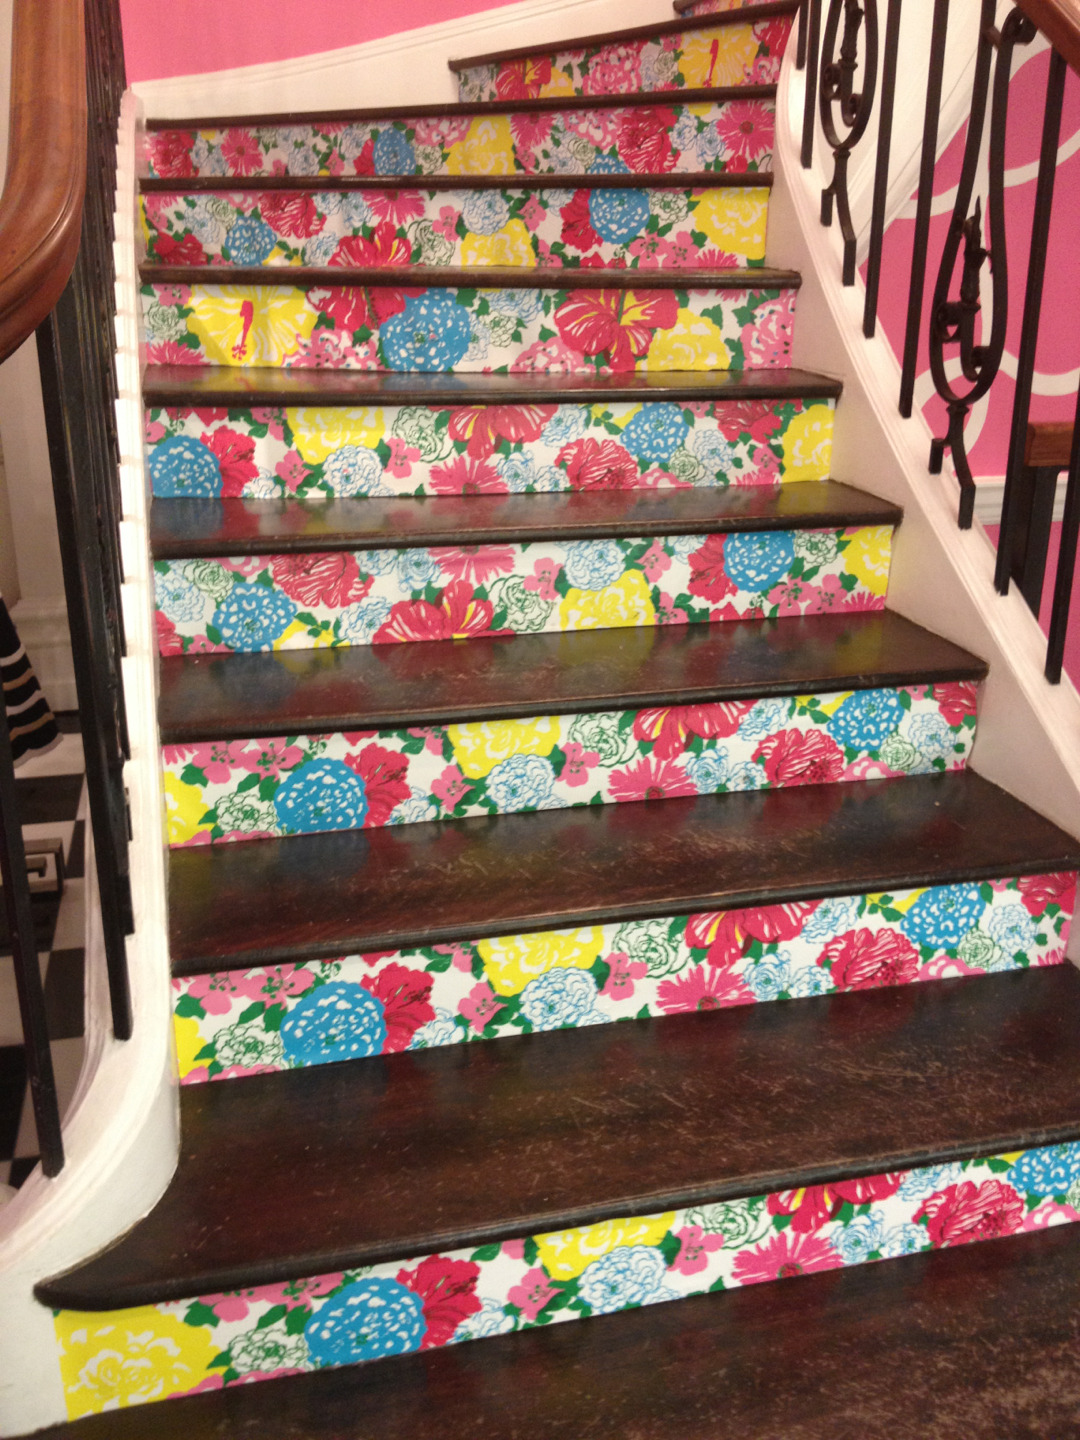 xoxocmy:  The stairs at the Lilly store on 79th St and Madison Ave in NYC